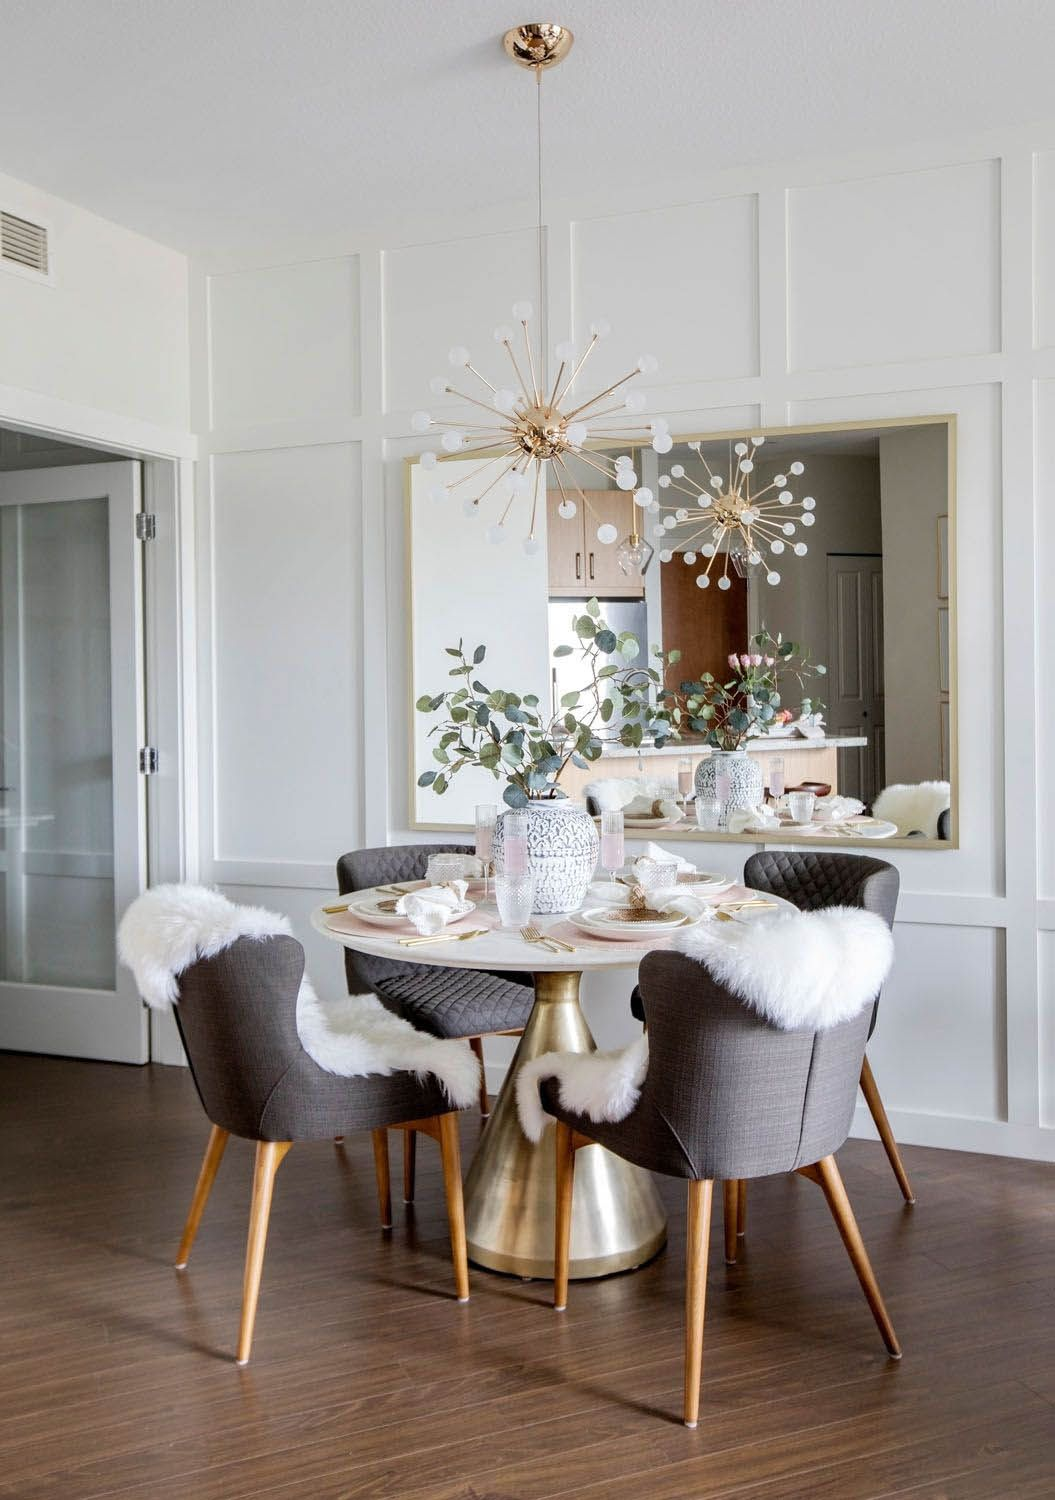 Artistic Ideas For Dining Room Walls Apartment Dining Dining Room Small Dining Room Design